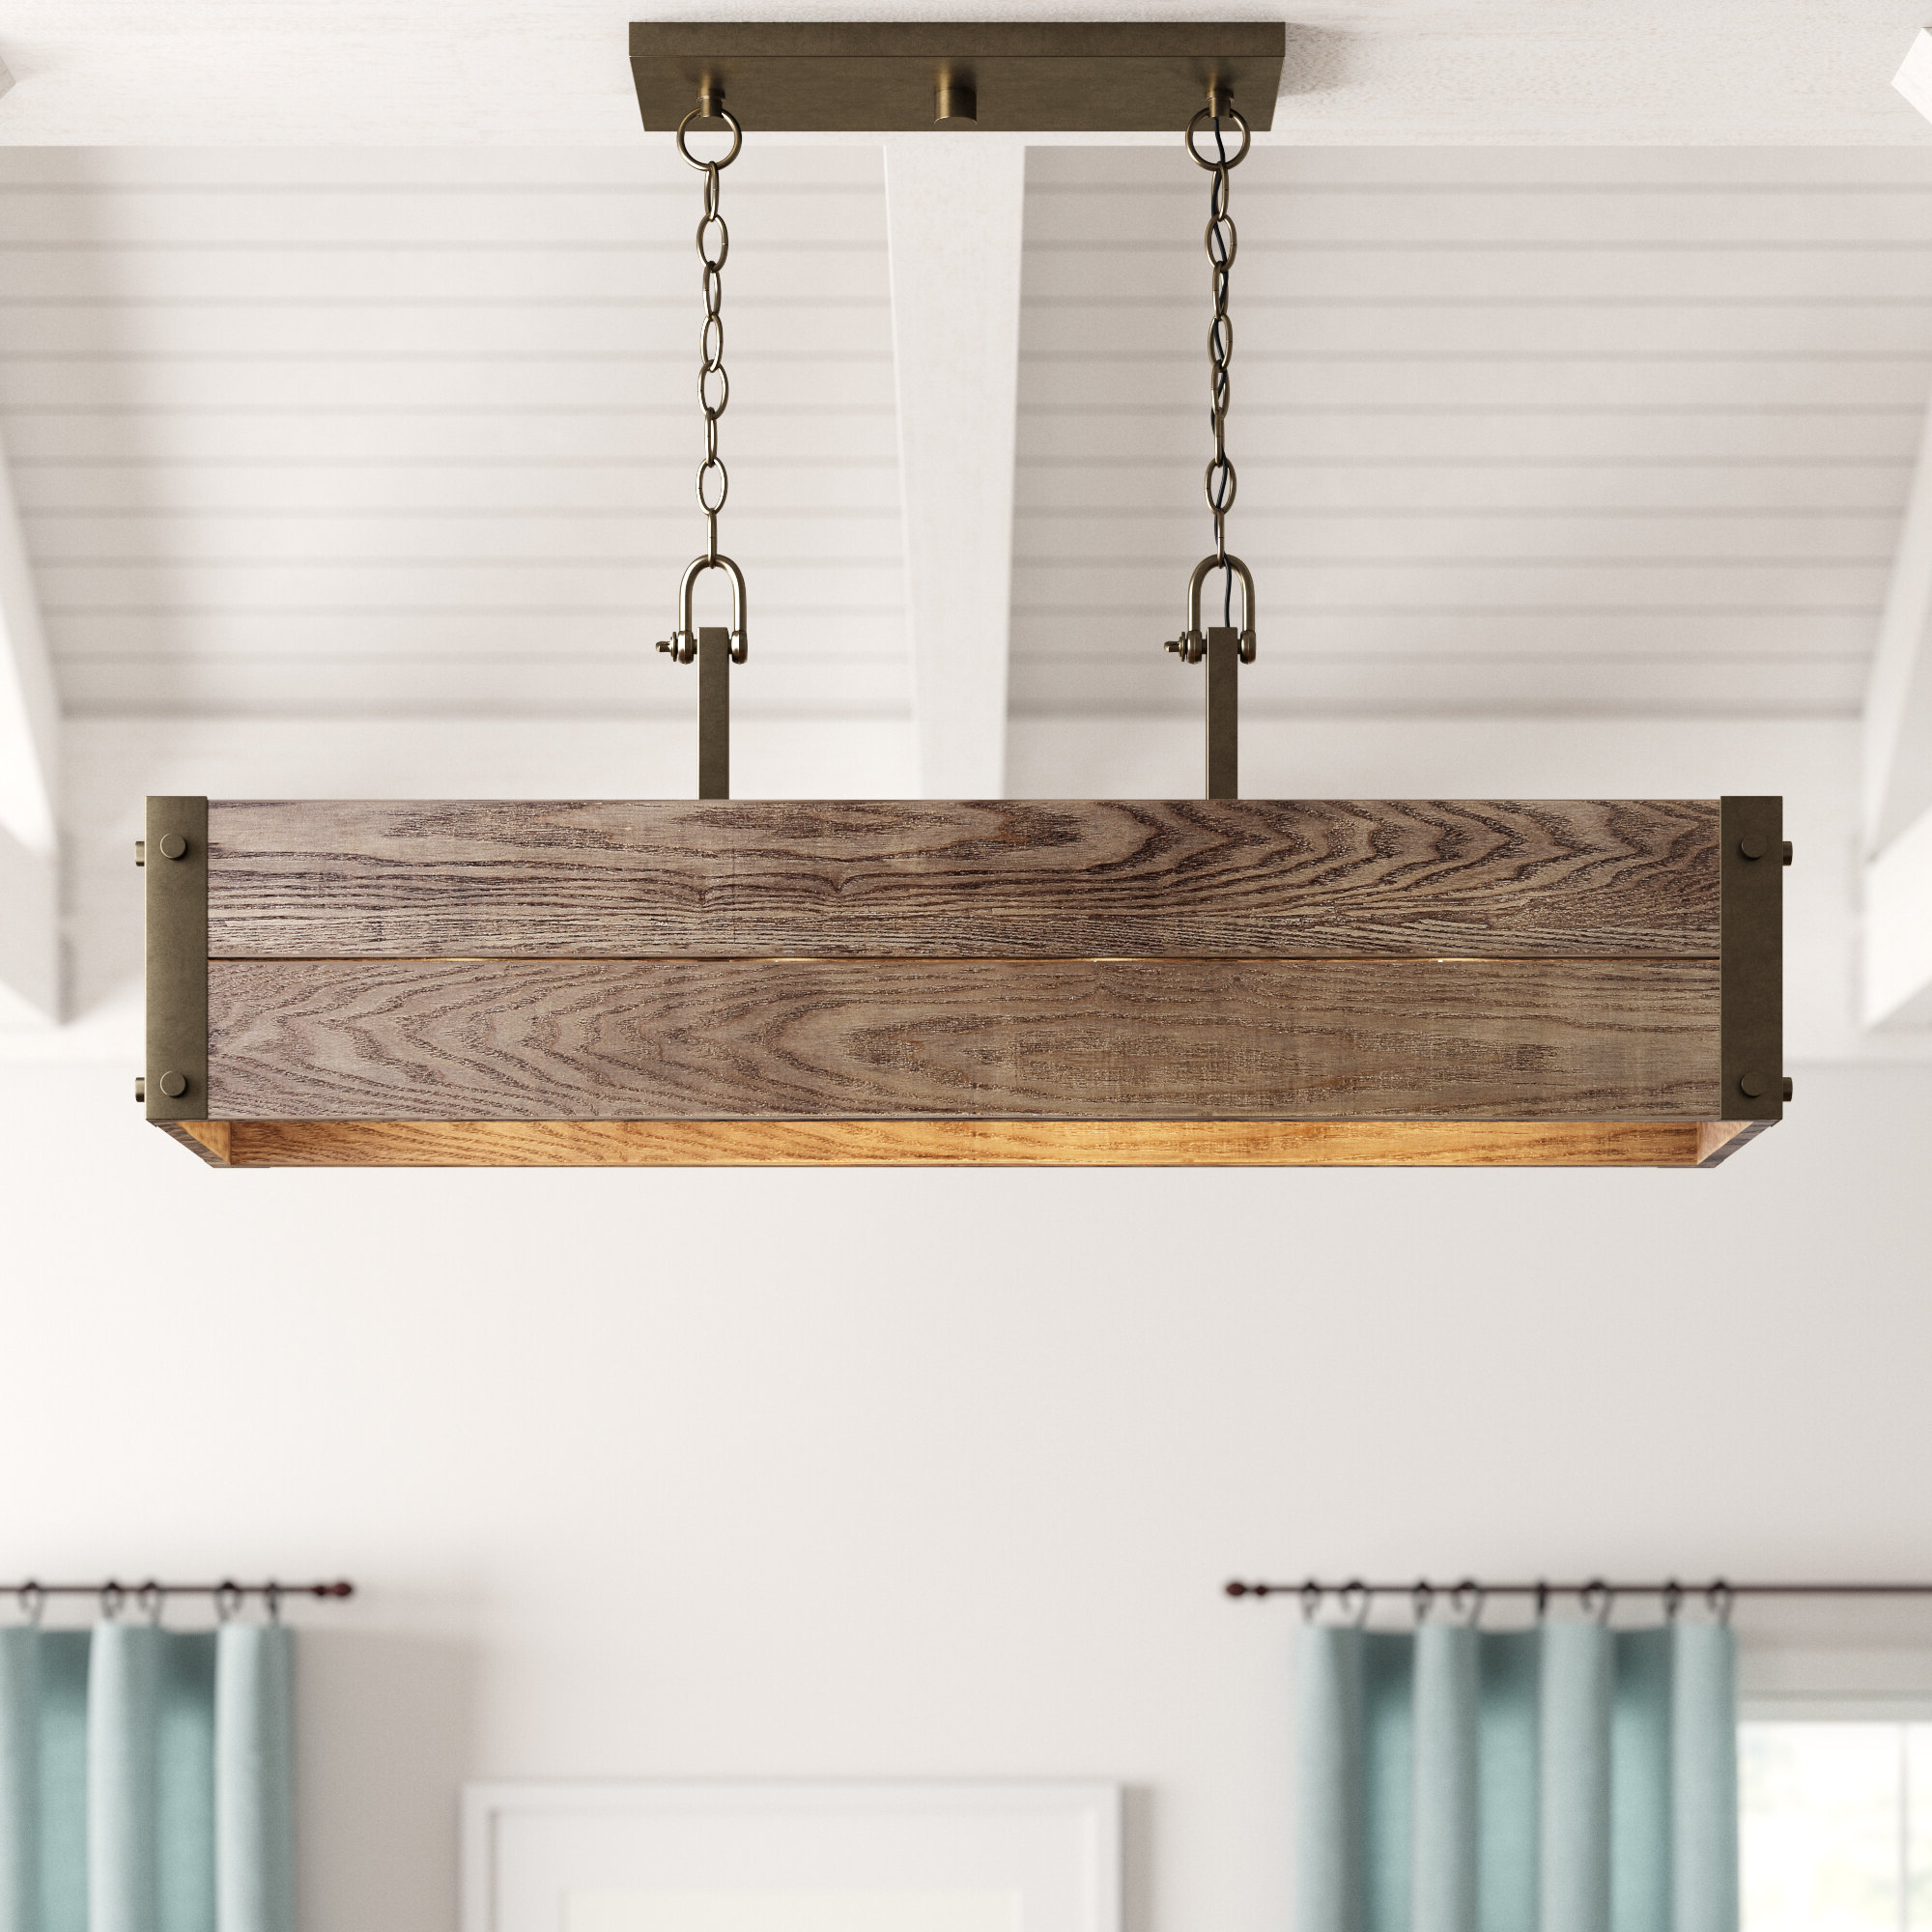 Most Recent Cinchring 4 Light Kitchen Island Linear Pendants Inside Cathey 4 Light Kitchen Island Linear Pendant (View 12 of 20)